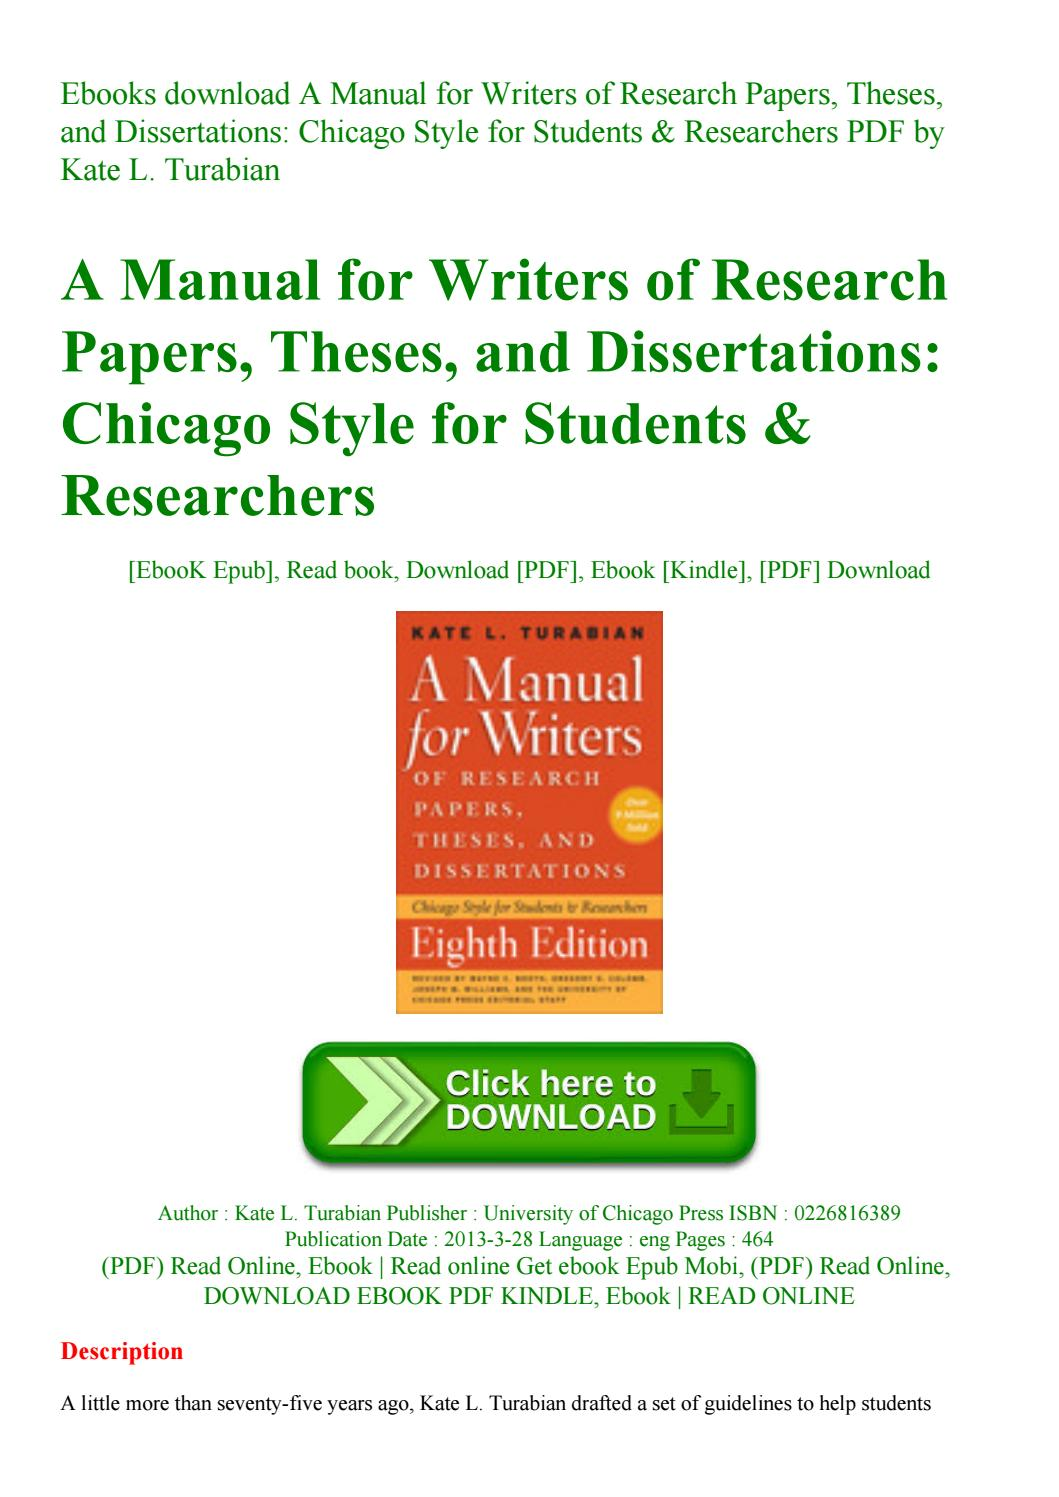 002 Manual For Writers Of Researchs Theses And Dissertations Pdf Download Page 1 Impressive A Research Papers Full